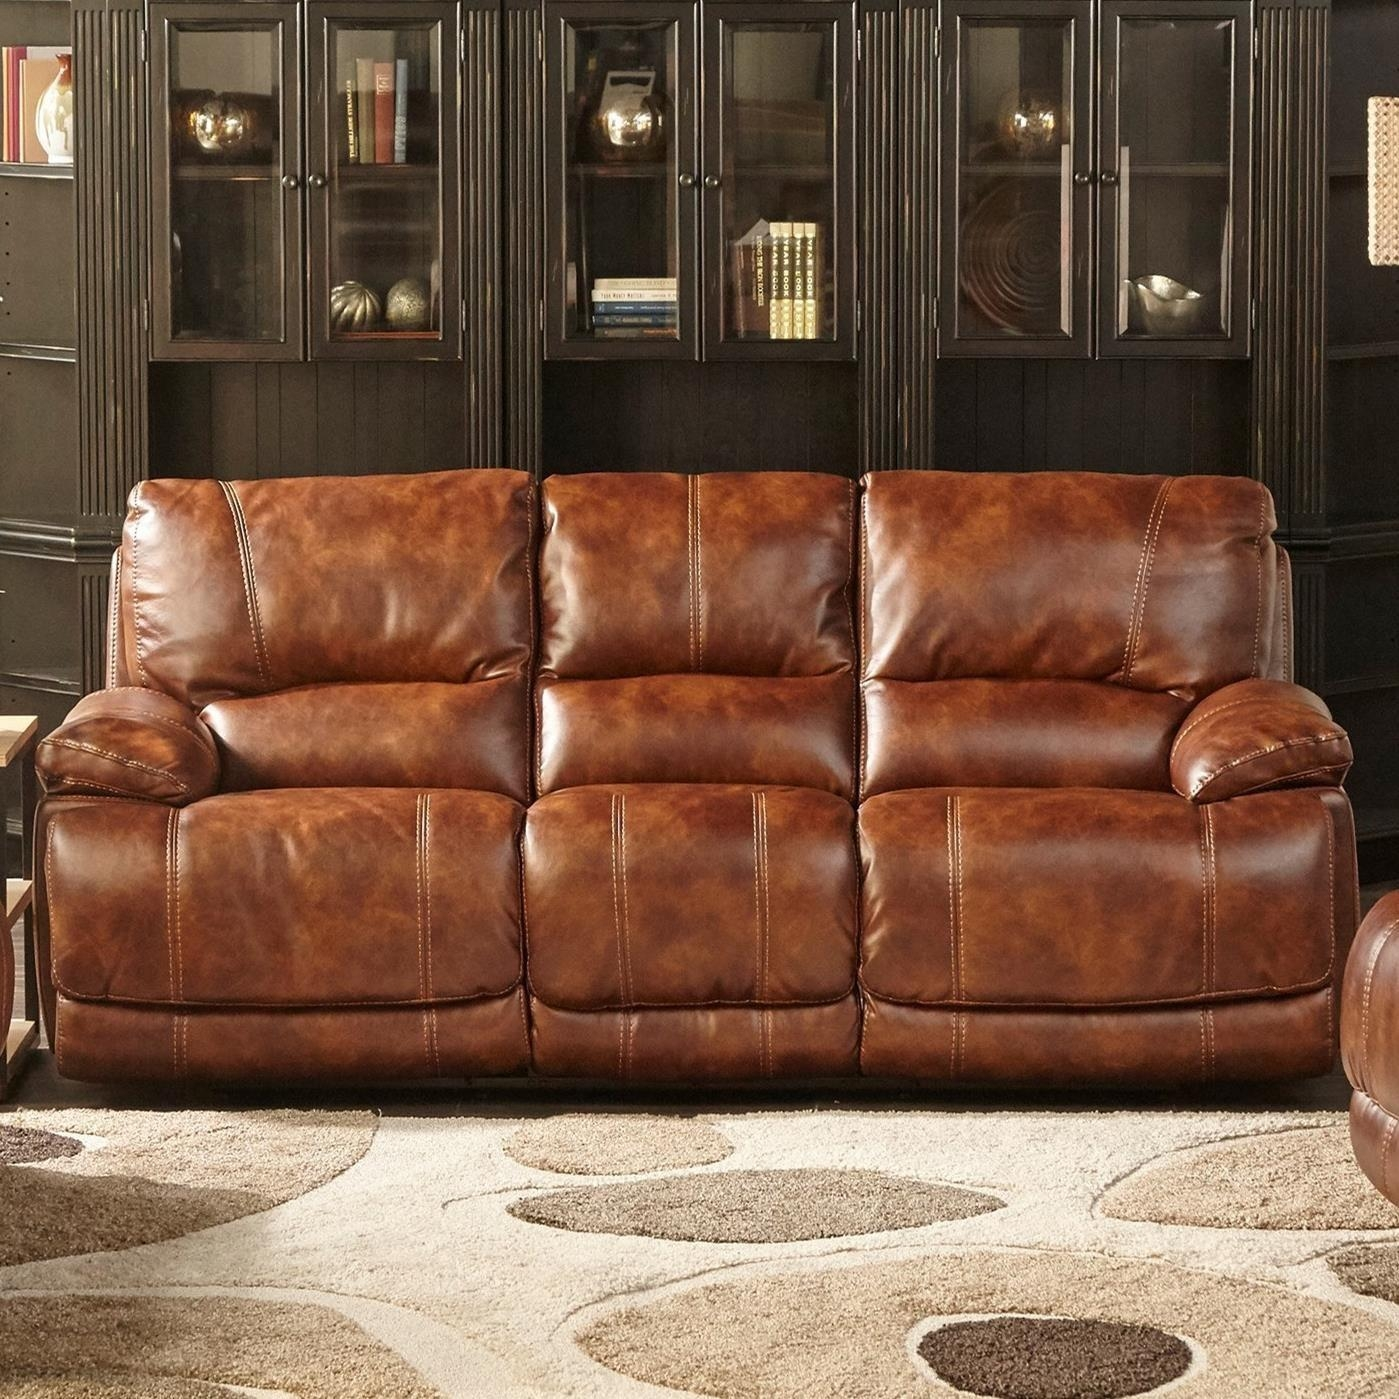 Cheers Sofa 5185M Dual Power Motion Sofa With Power Headrests Regarding Cheers Leather Sofas (Image 14 of 20)